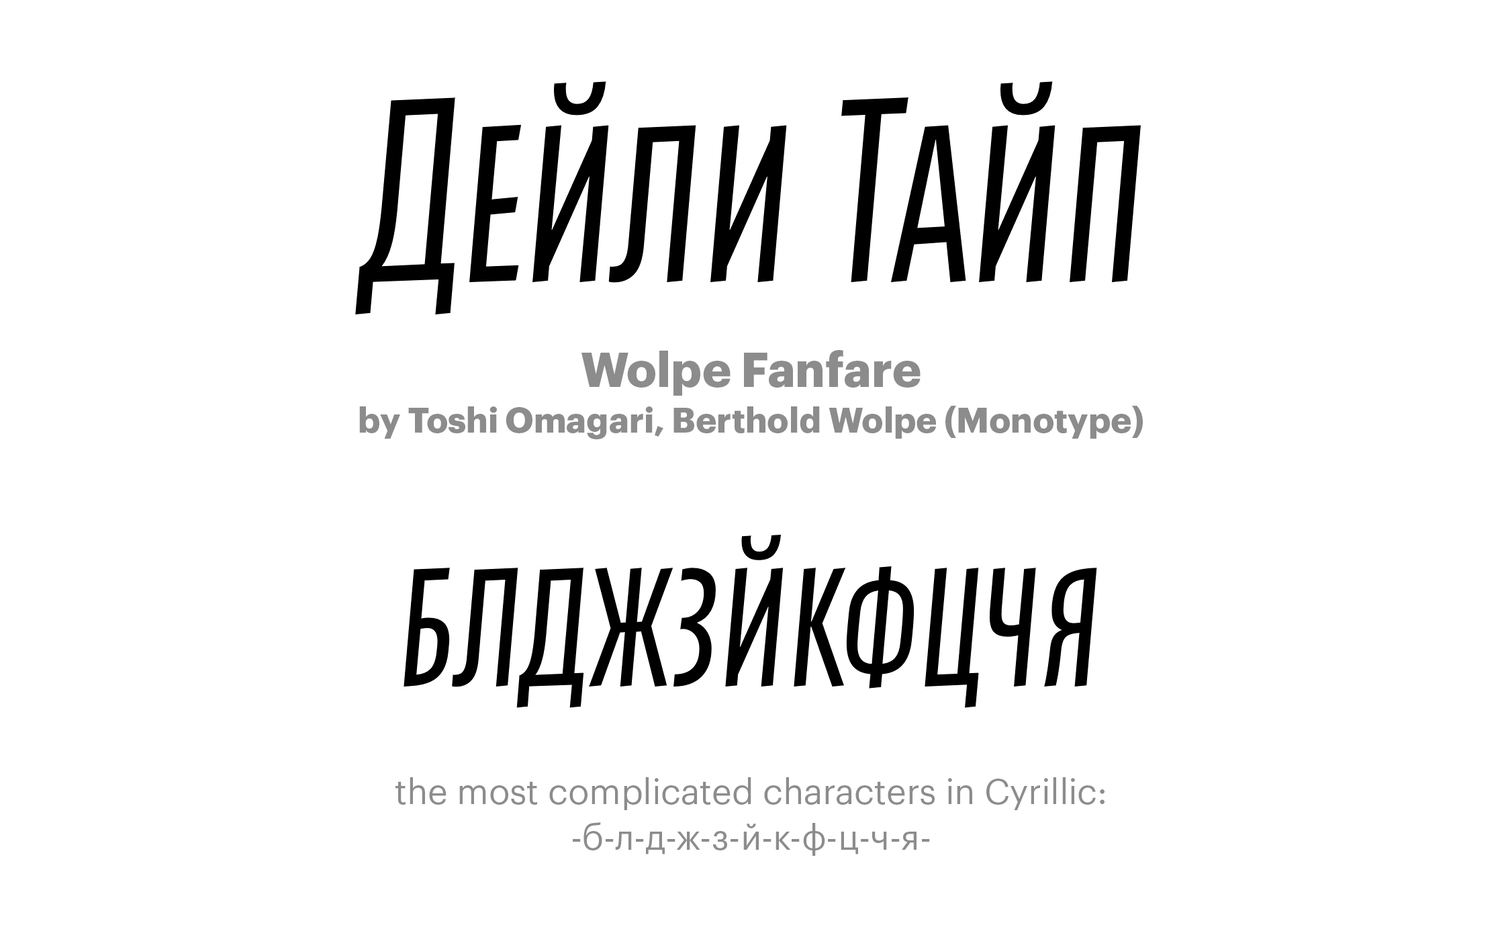 Wolpe-Fanfare-by-Toshi-Omagari,-Berthold-Wolpe-(Monotype)